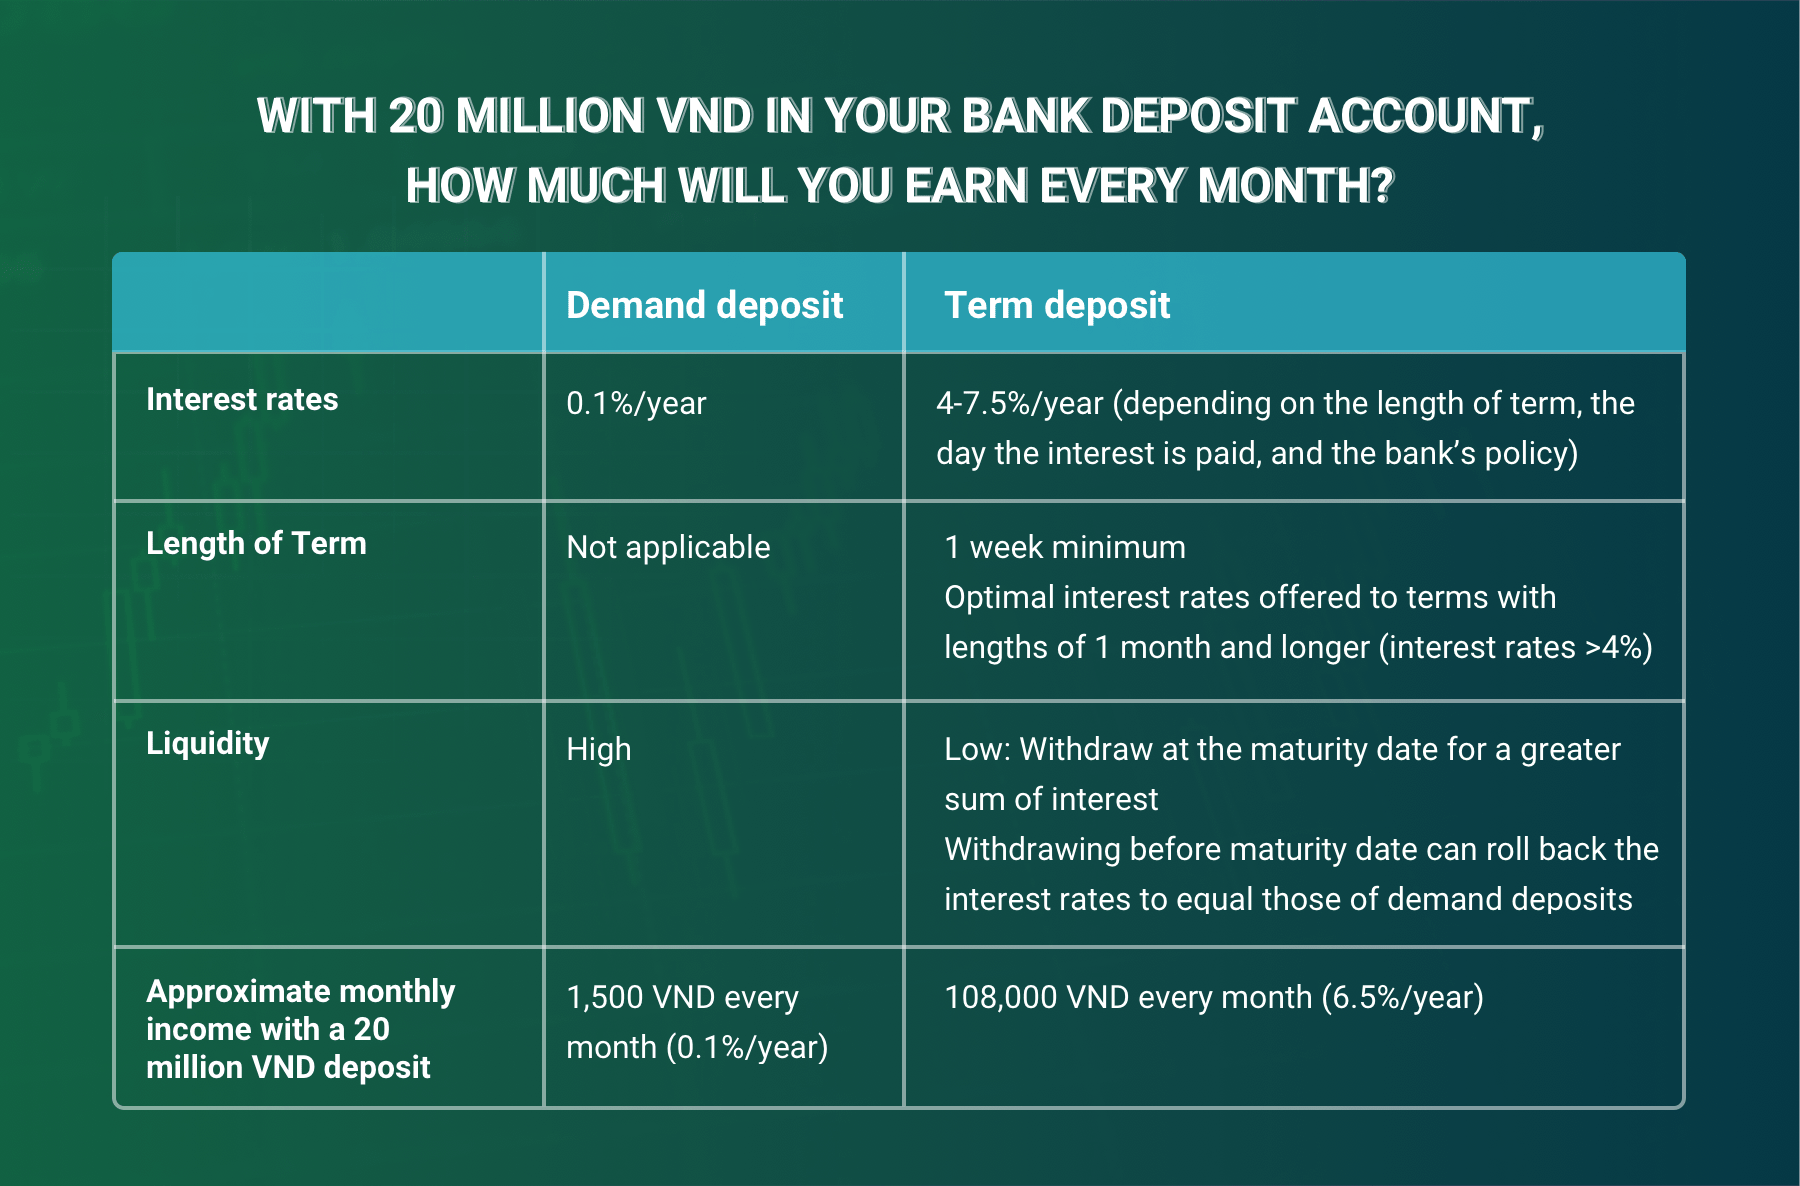 With 20 million VND in your bank deposit account, how much will you earn every month